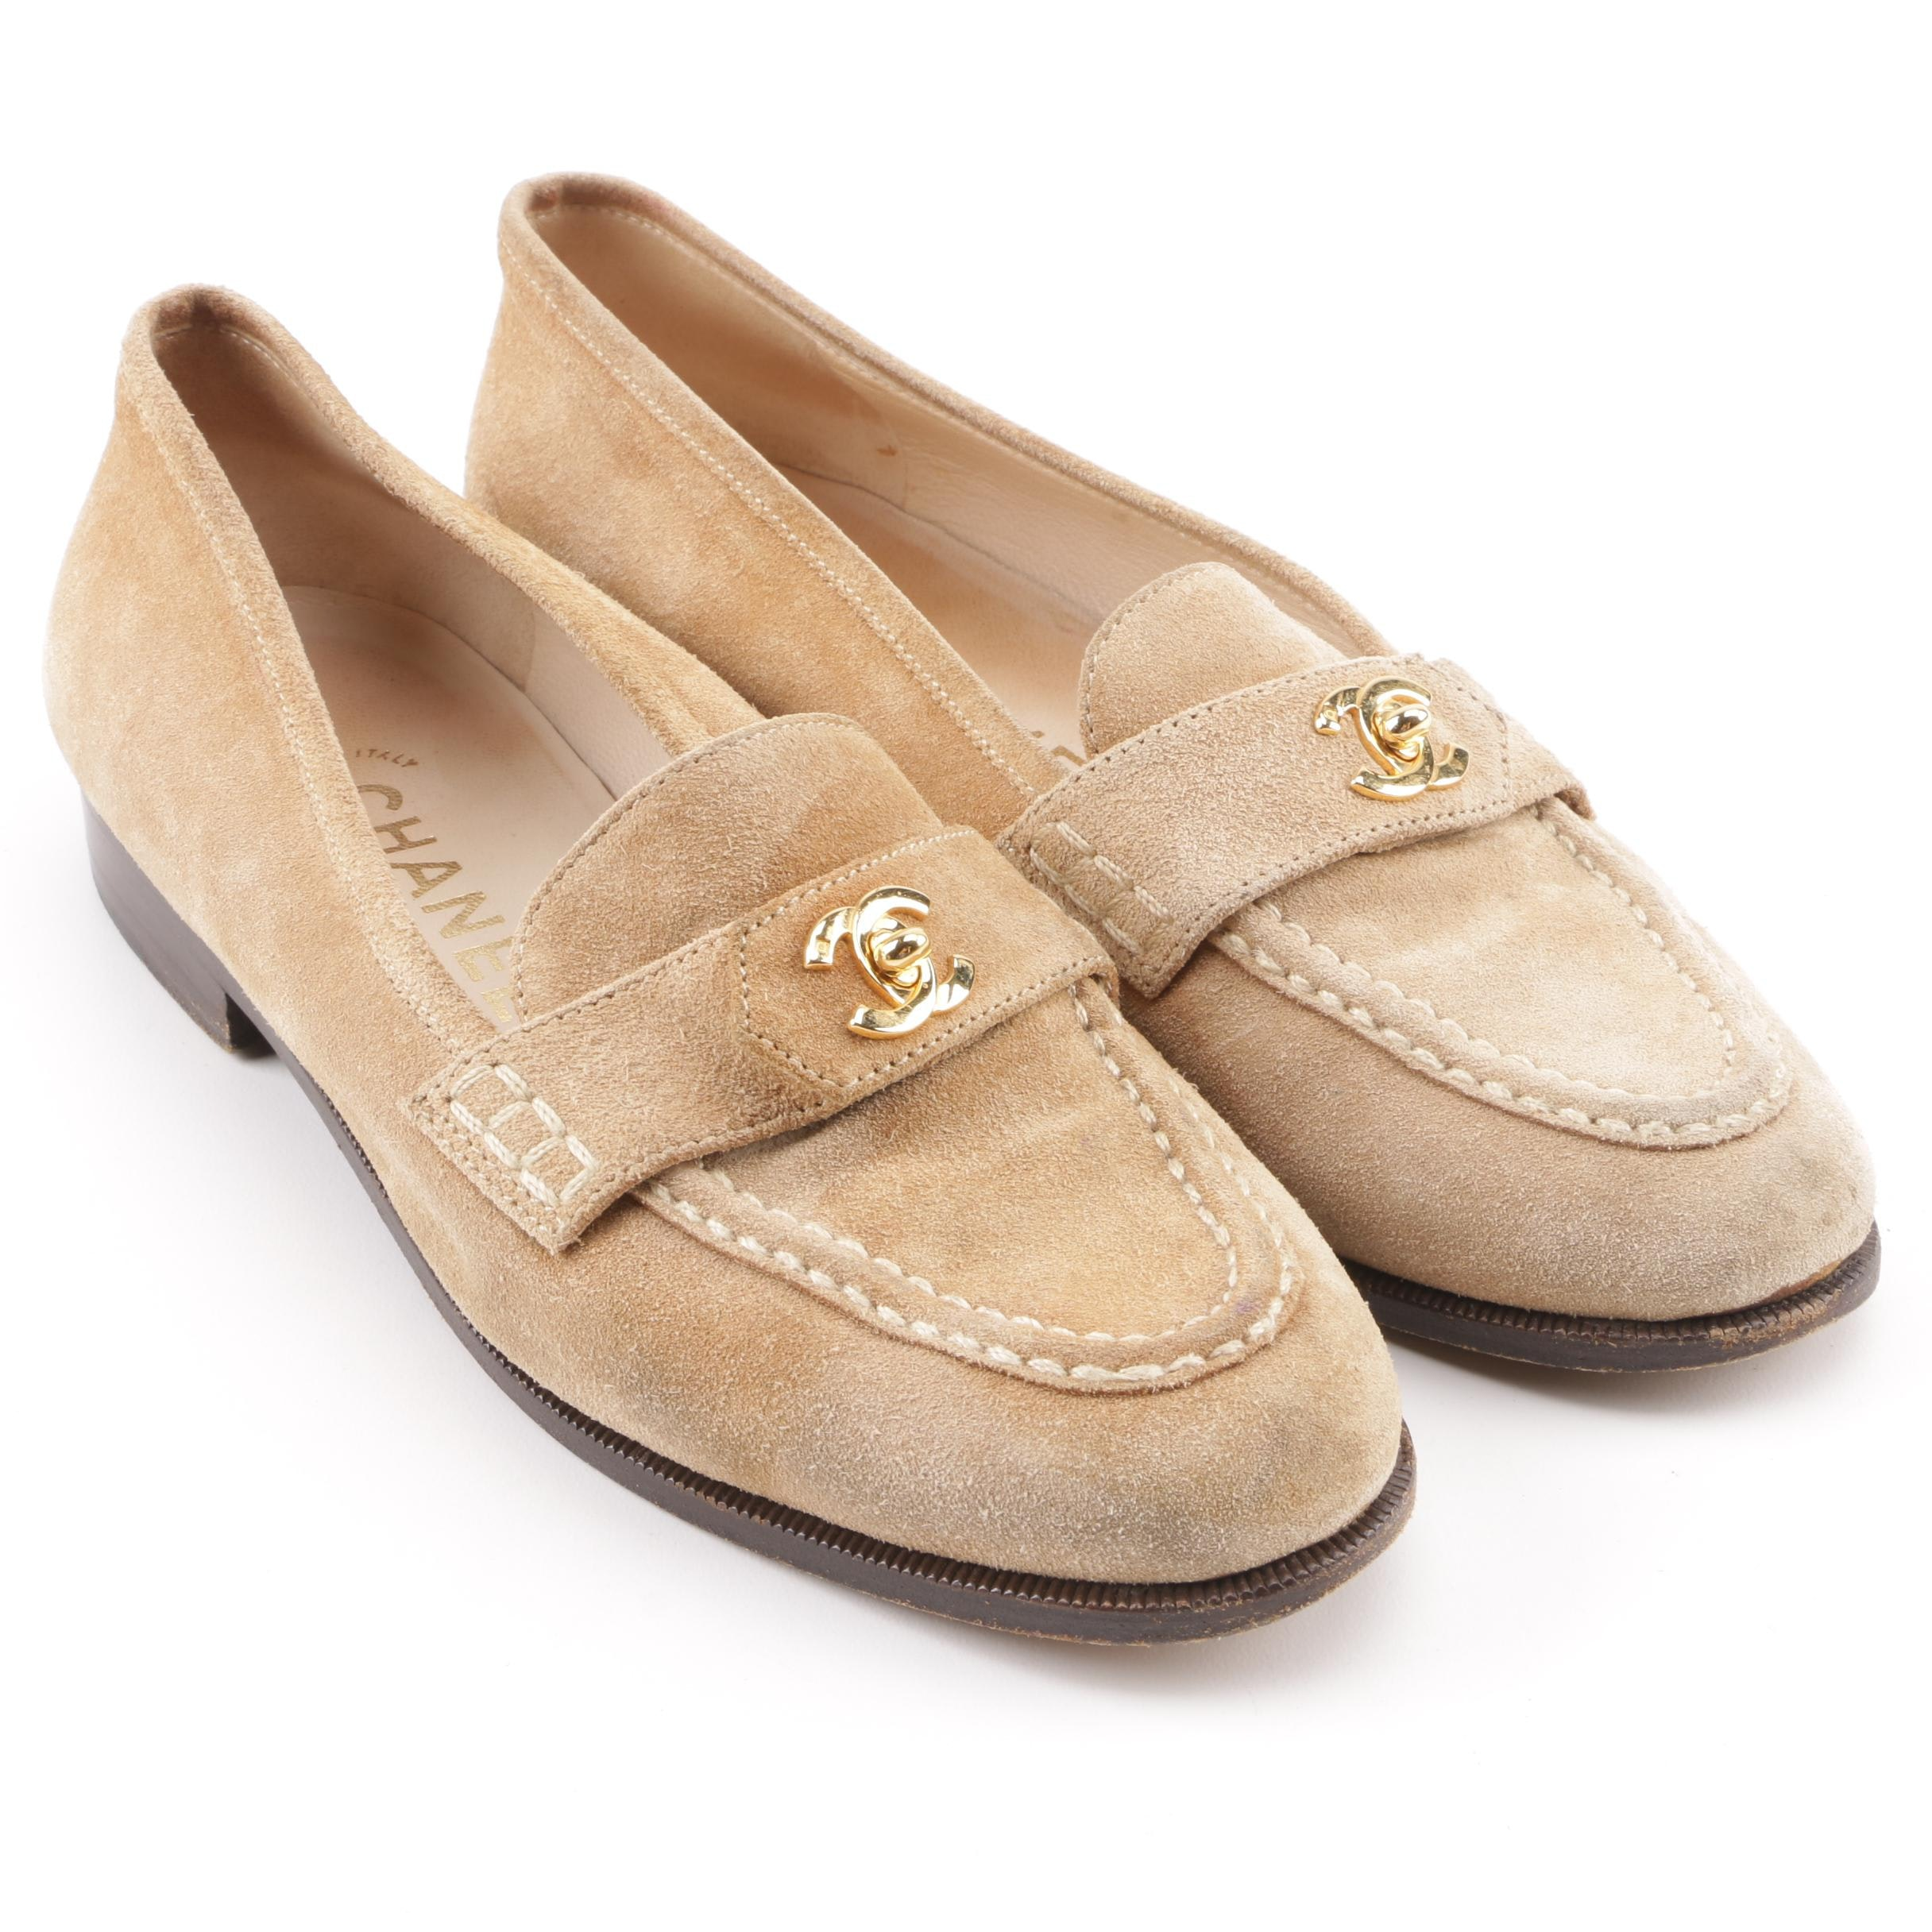 Women's Vintage Chanel Beige Suede CC Turn Lock Loafers